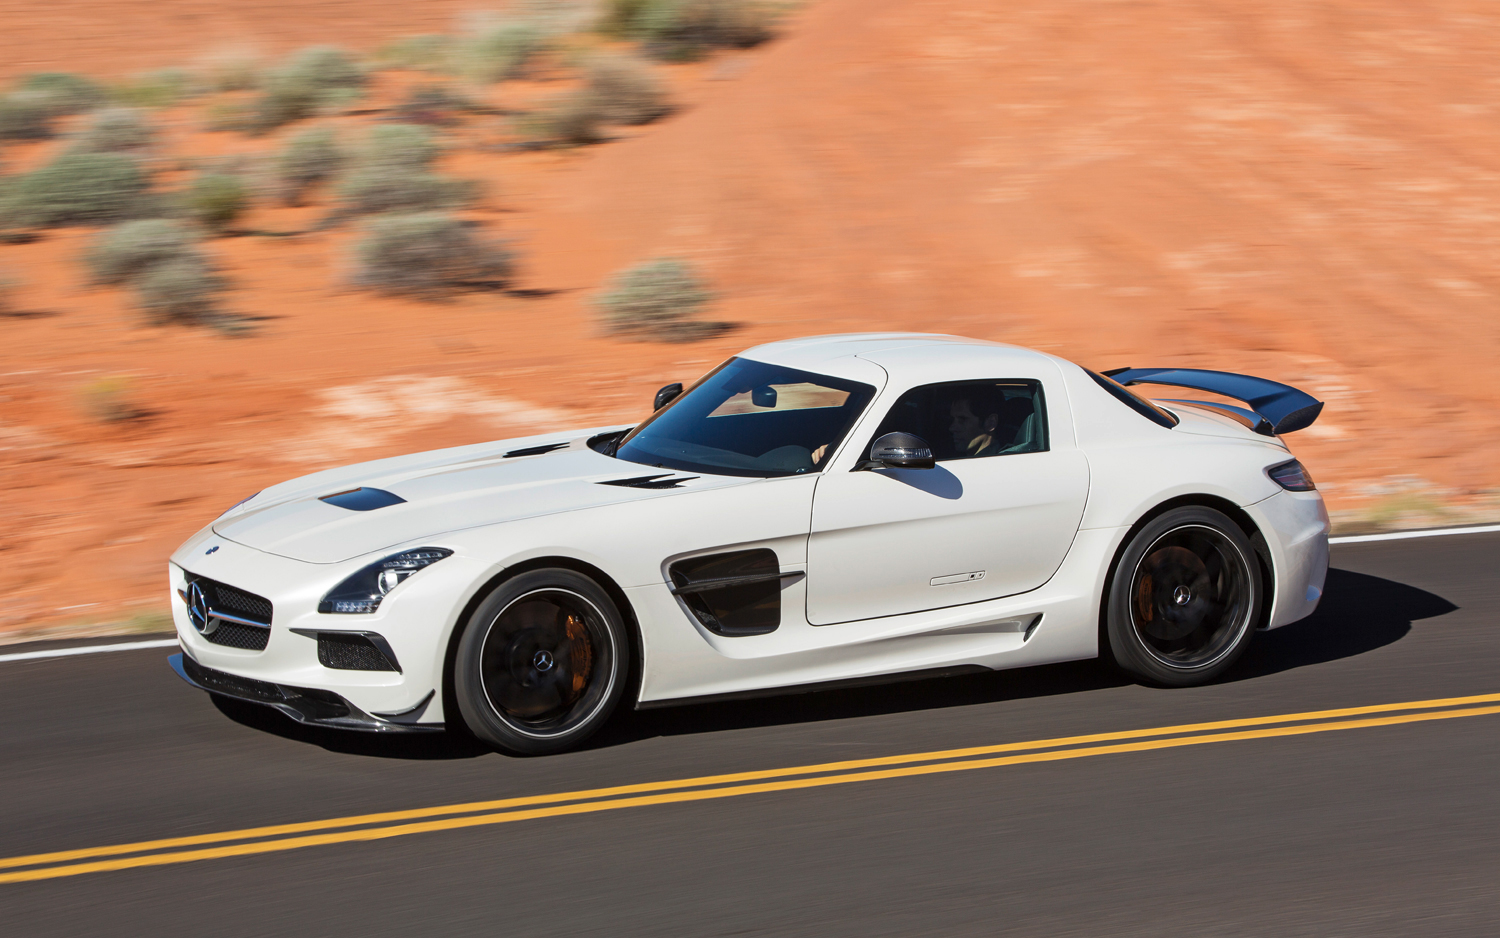 2019 Mercedes Benz SLS AMG photo - 5